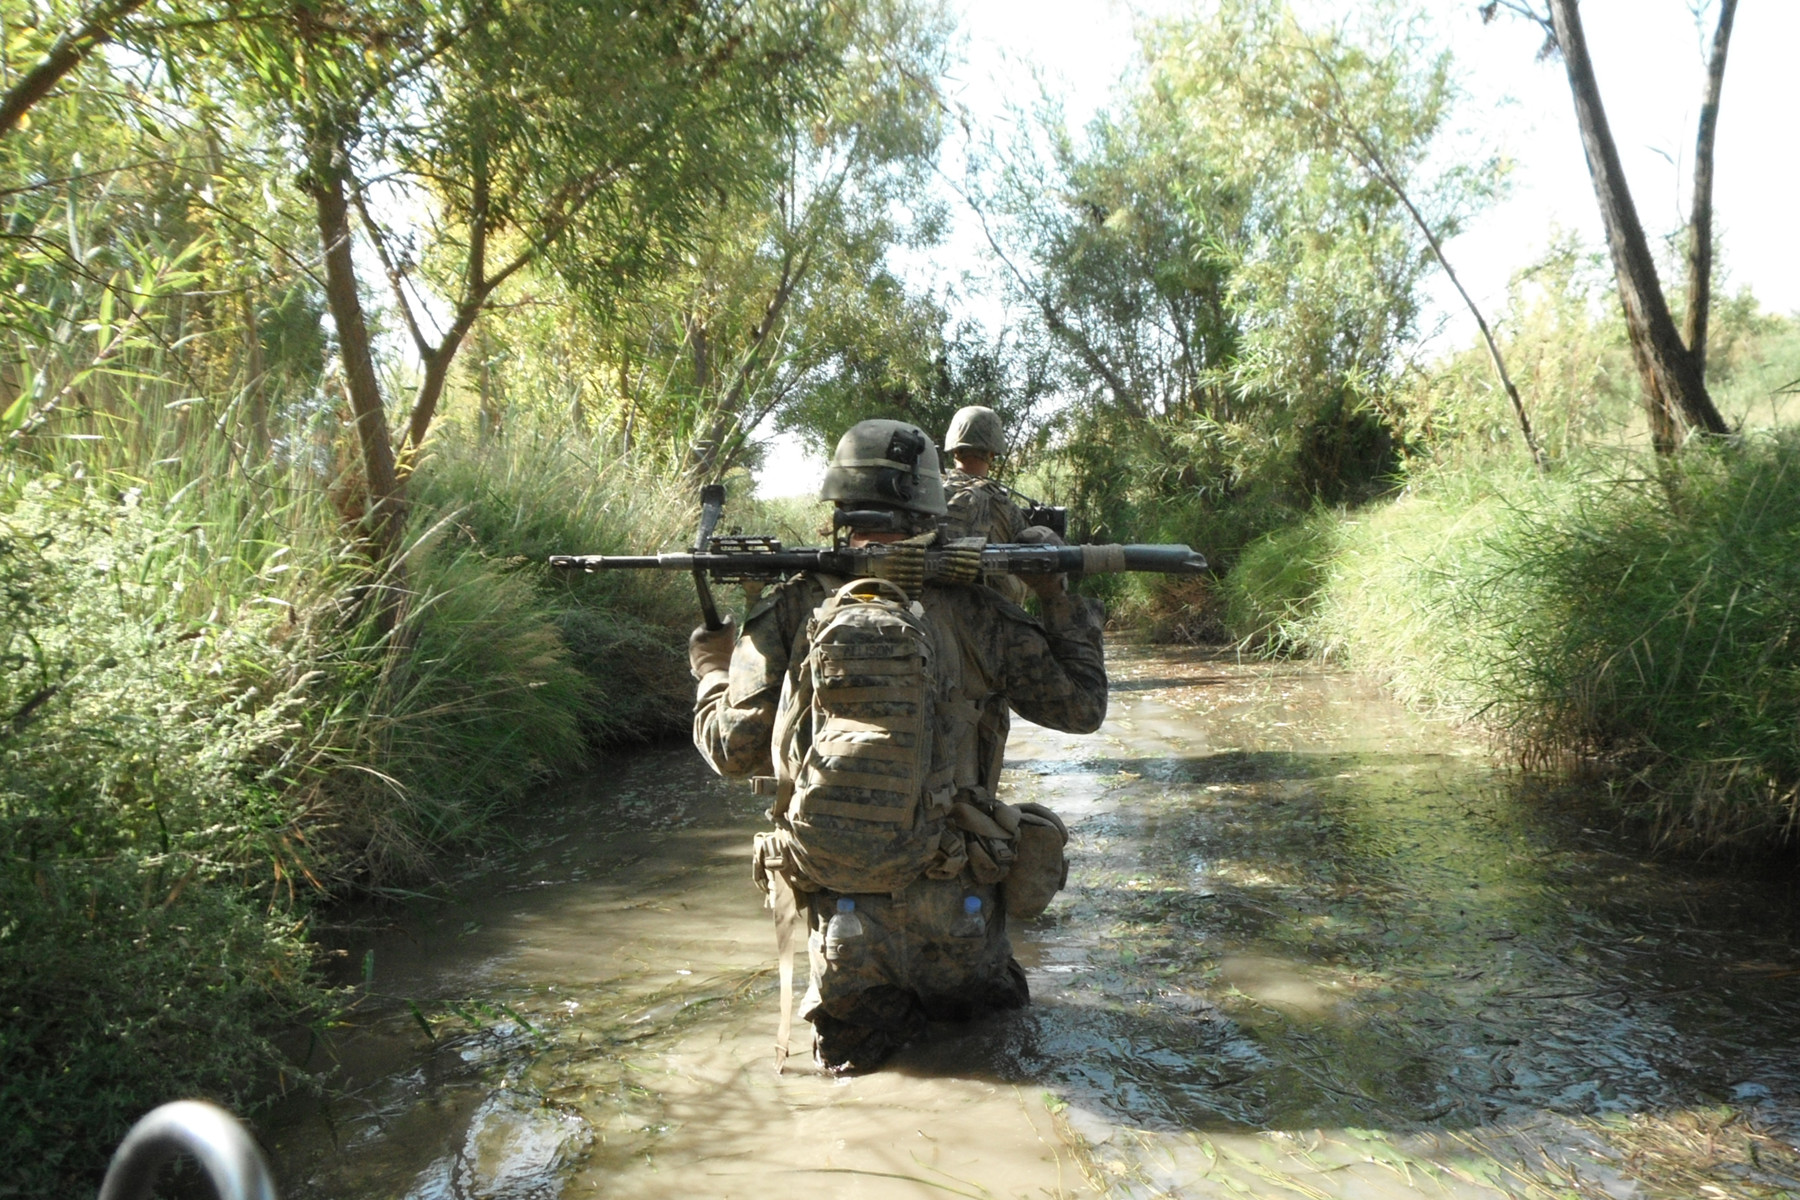 The safest, and least comfortable, route. Kilo Company's LCpl Casey Allison patrols with 1st Platoon through one of the Northern Green Zone's ubiquitous canals - the only place sure to be free of IEDs. (Photo courtesy of Seth Folsom.)